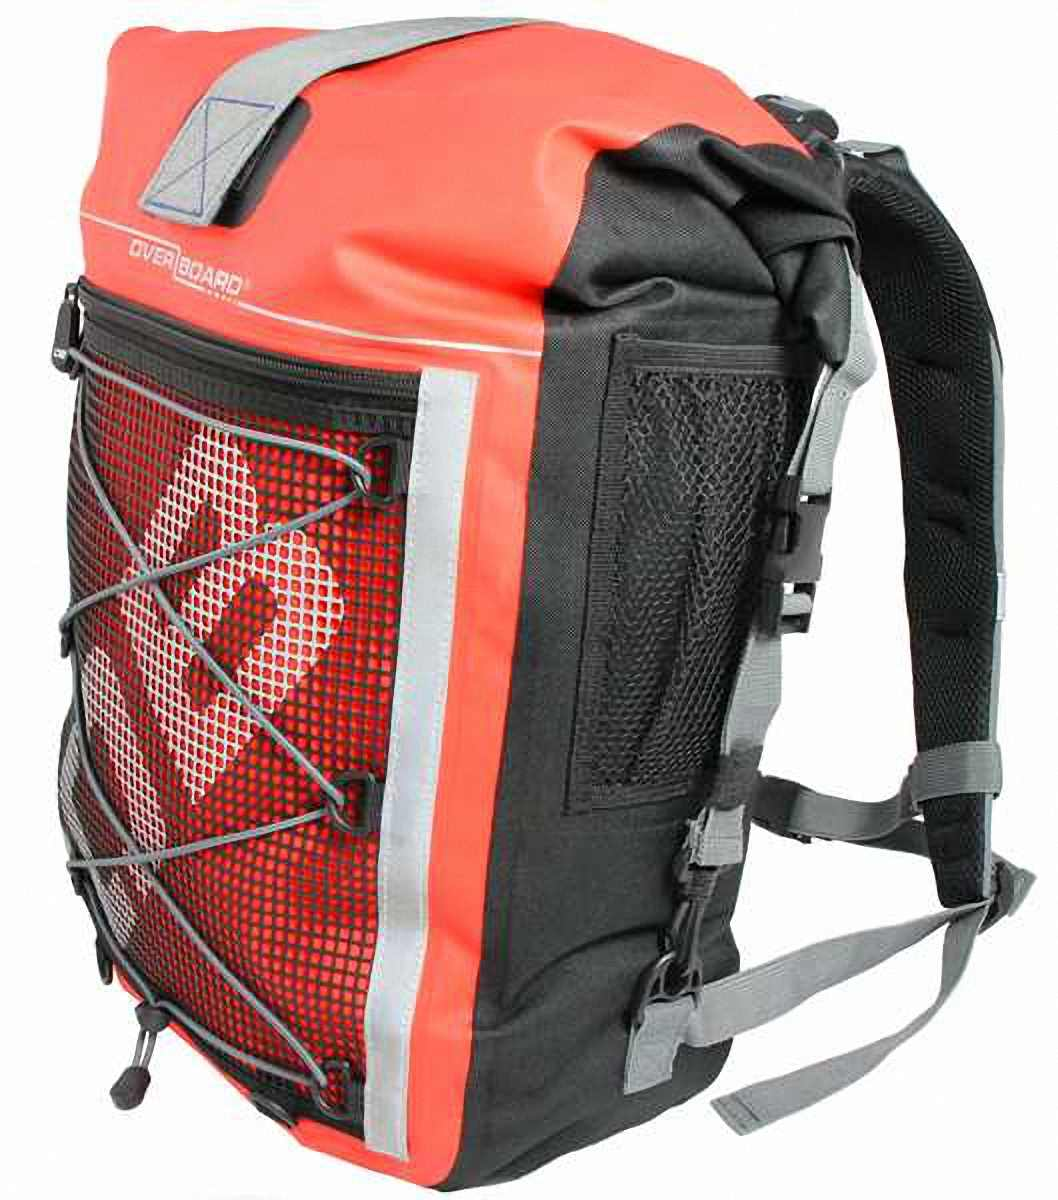 Водонепроницаемый рюкзак OverBoard OB1096R - Pro-Sports Waterproof Backpack - 30L. Фото 2